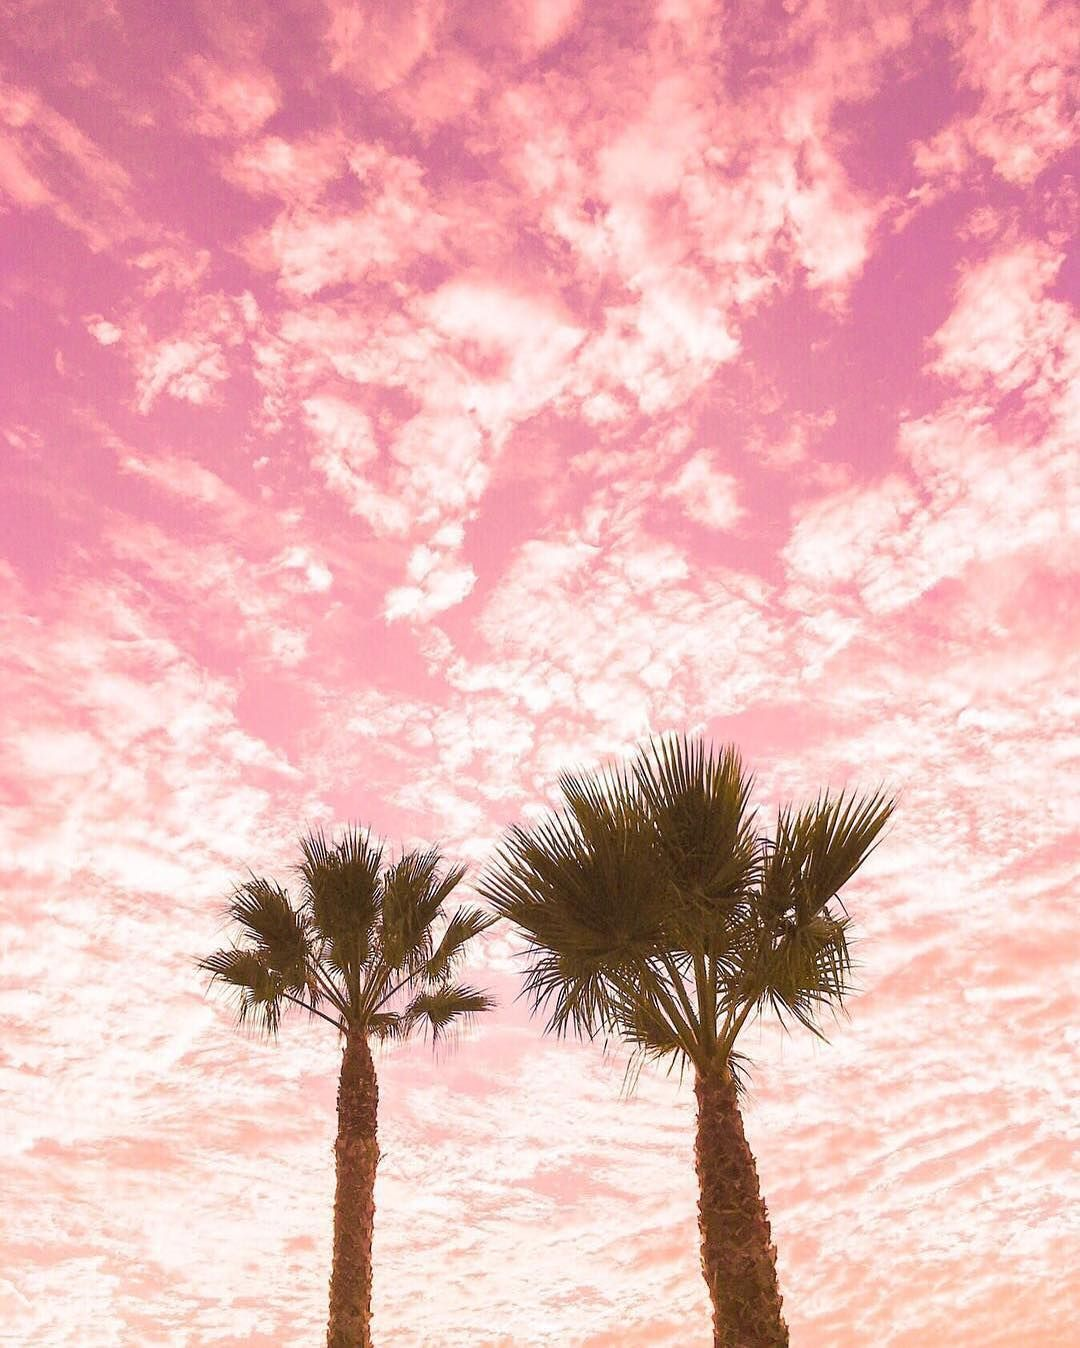 Drawing Bookcover Design: Pink Skies & Palm Trees